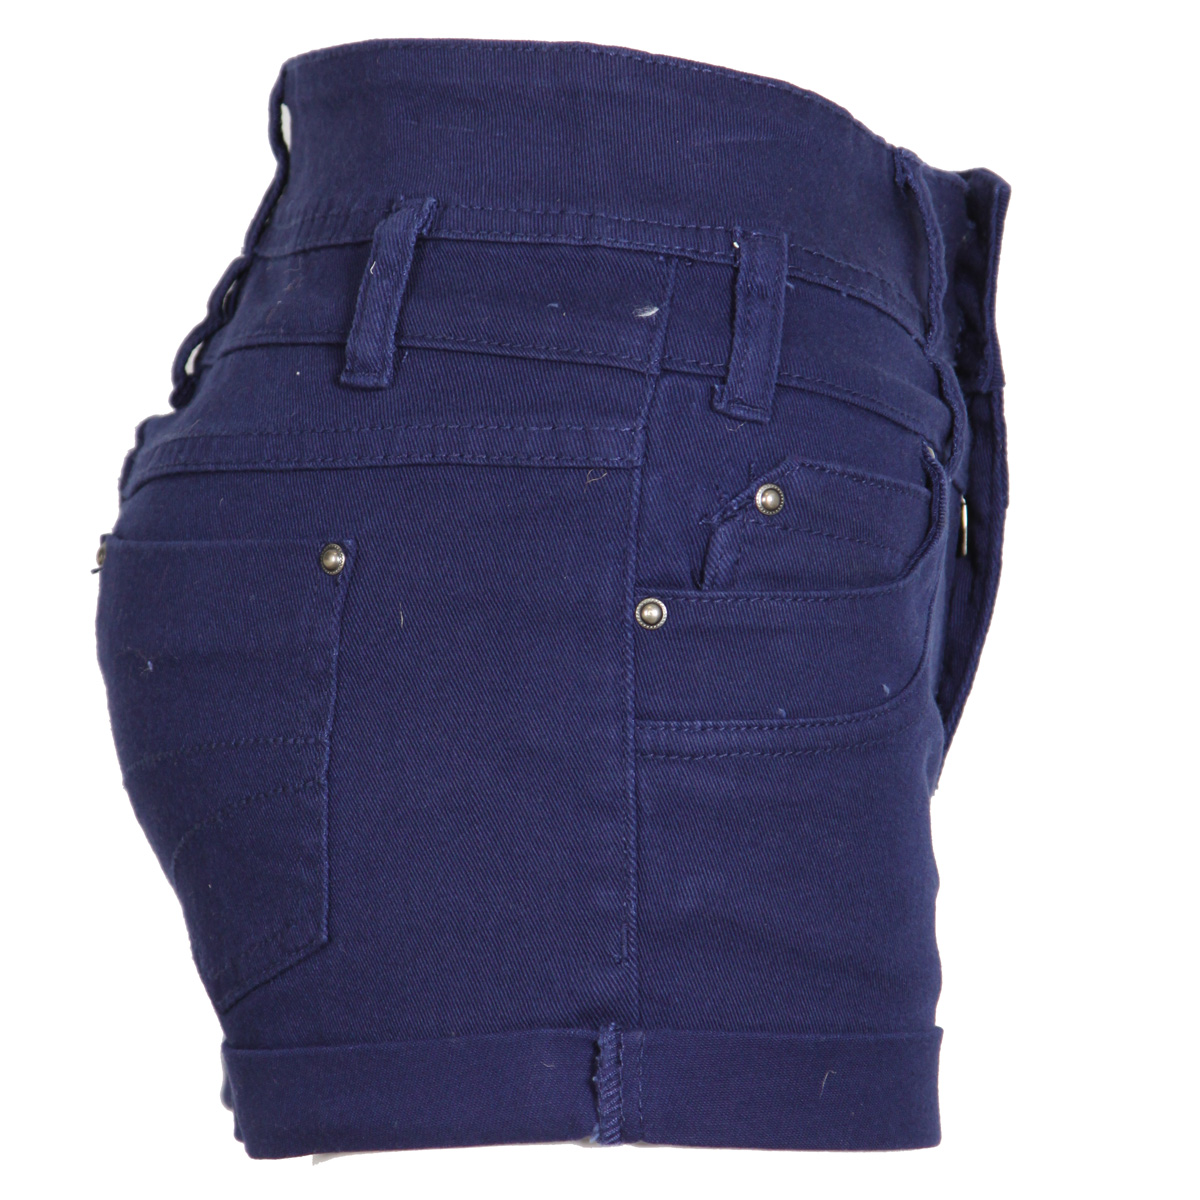 NEW-WOMENS-NAVY-BLUE-DENIM-SHORTS-HIGH-WAIST-HOT-PANTS-HOTPANTS-LADIES-CASUAL